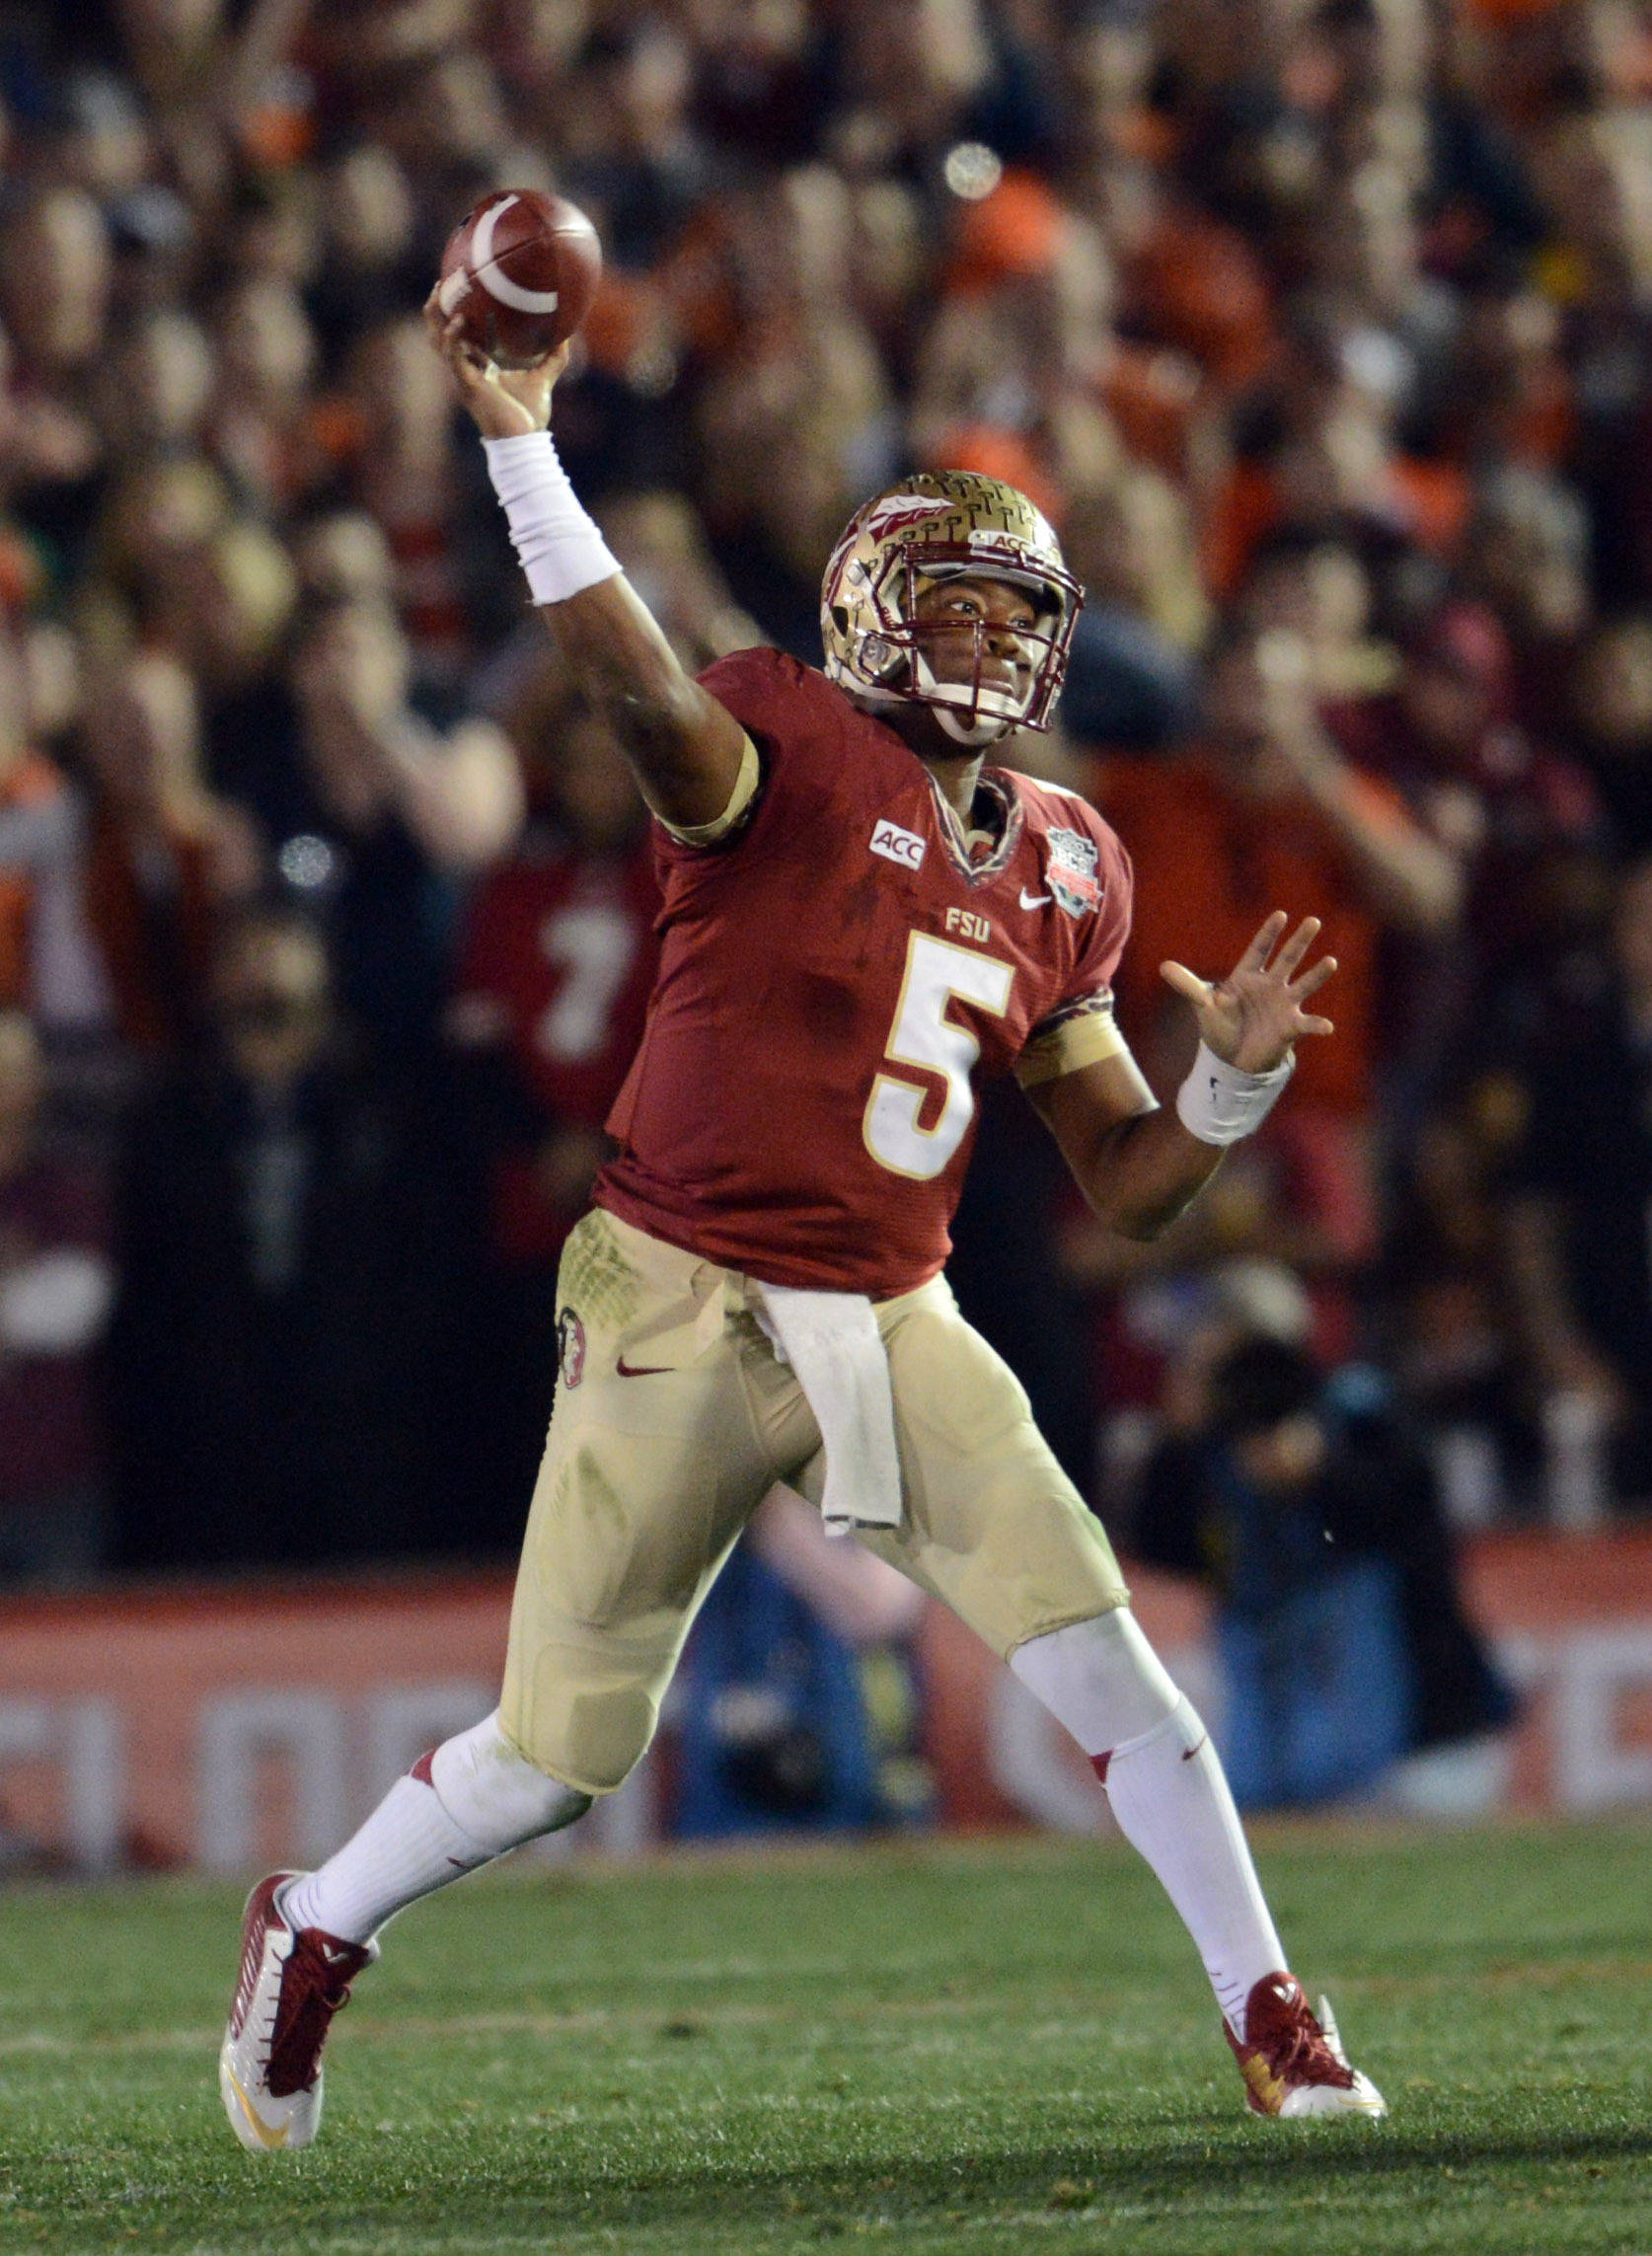 Jan 6, 2014; Pasadena, CA, USA; Florida State Seminoles quarterback Jameis Winston (5) throws a pass against the Auburn Tigers during the first half of the 2014 BCS National Championship game at the Rose Bowl.  Mandatory Credit: Jayne Kamin-Oncea-USA TODAY Sports